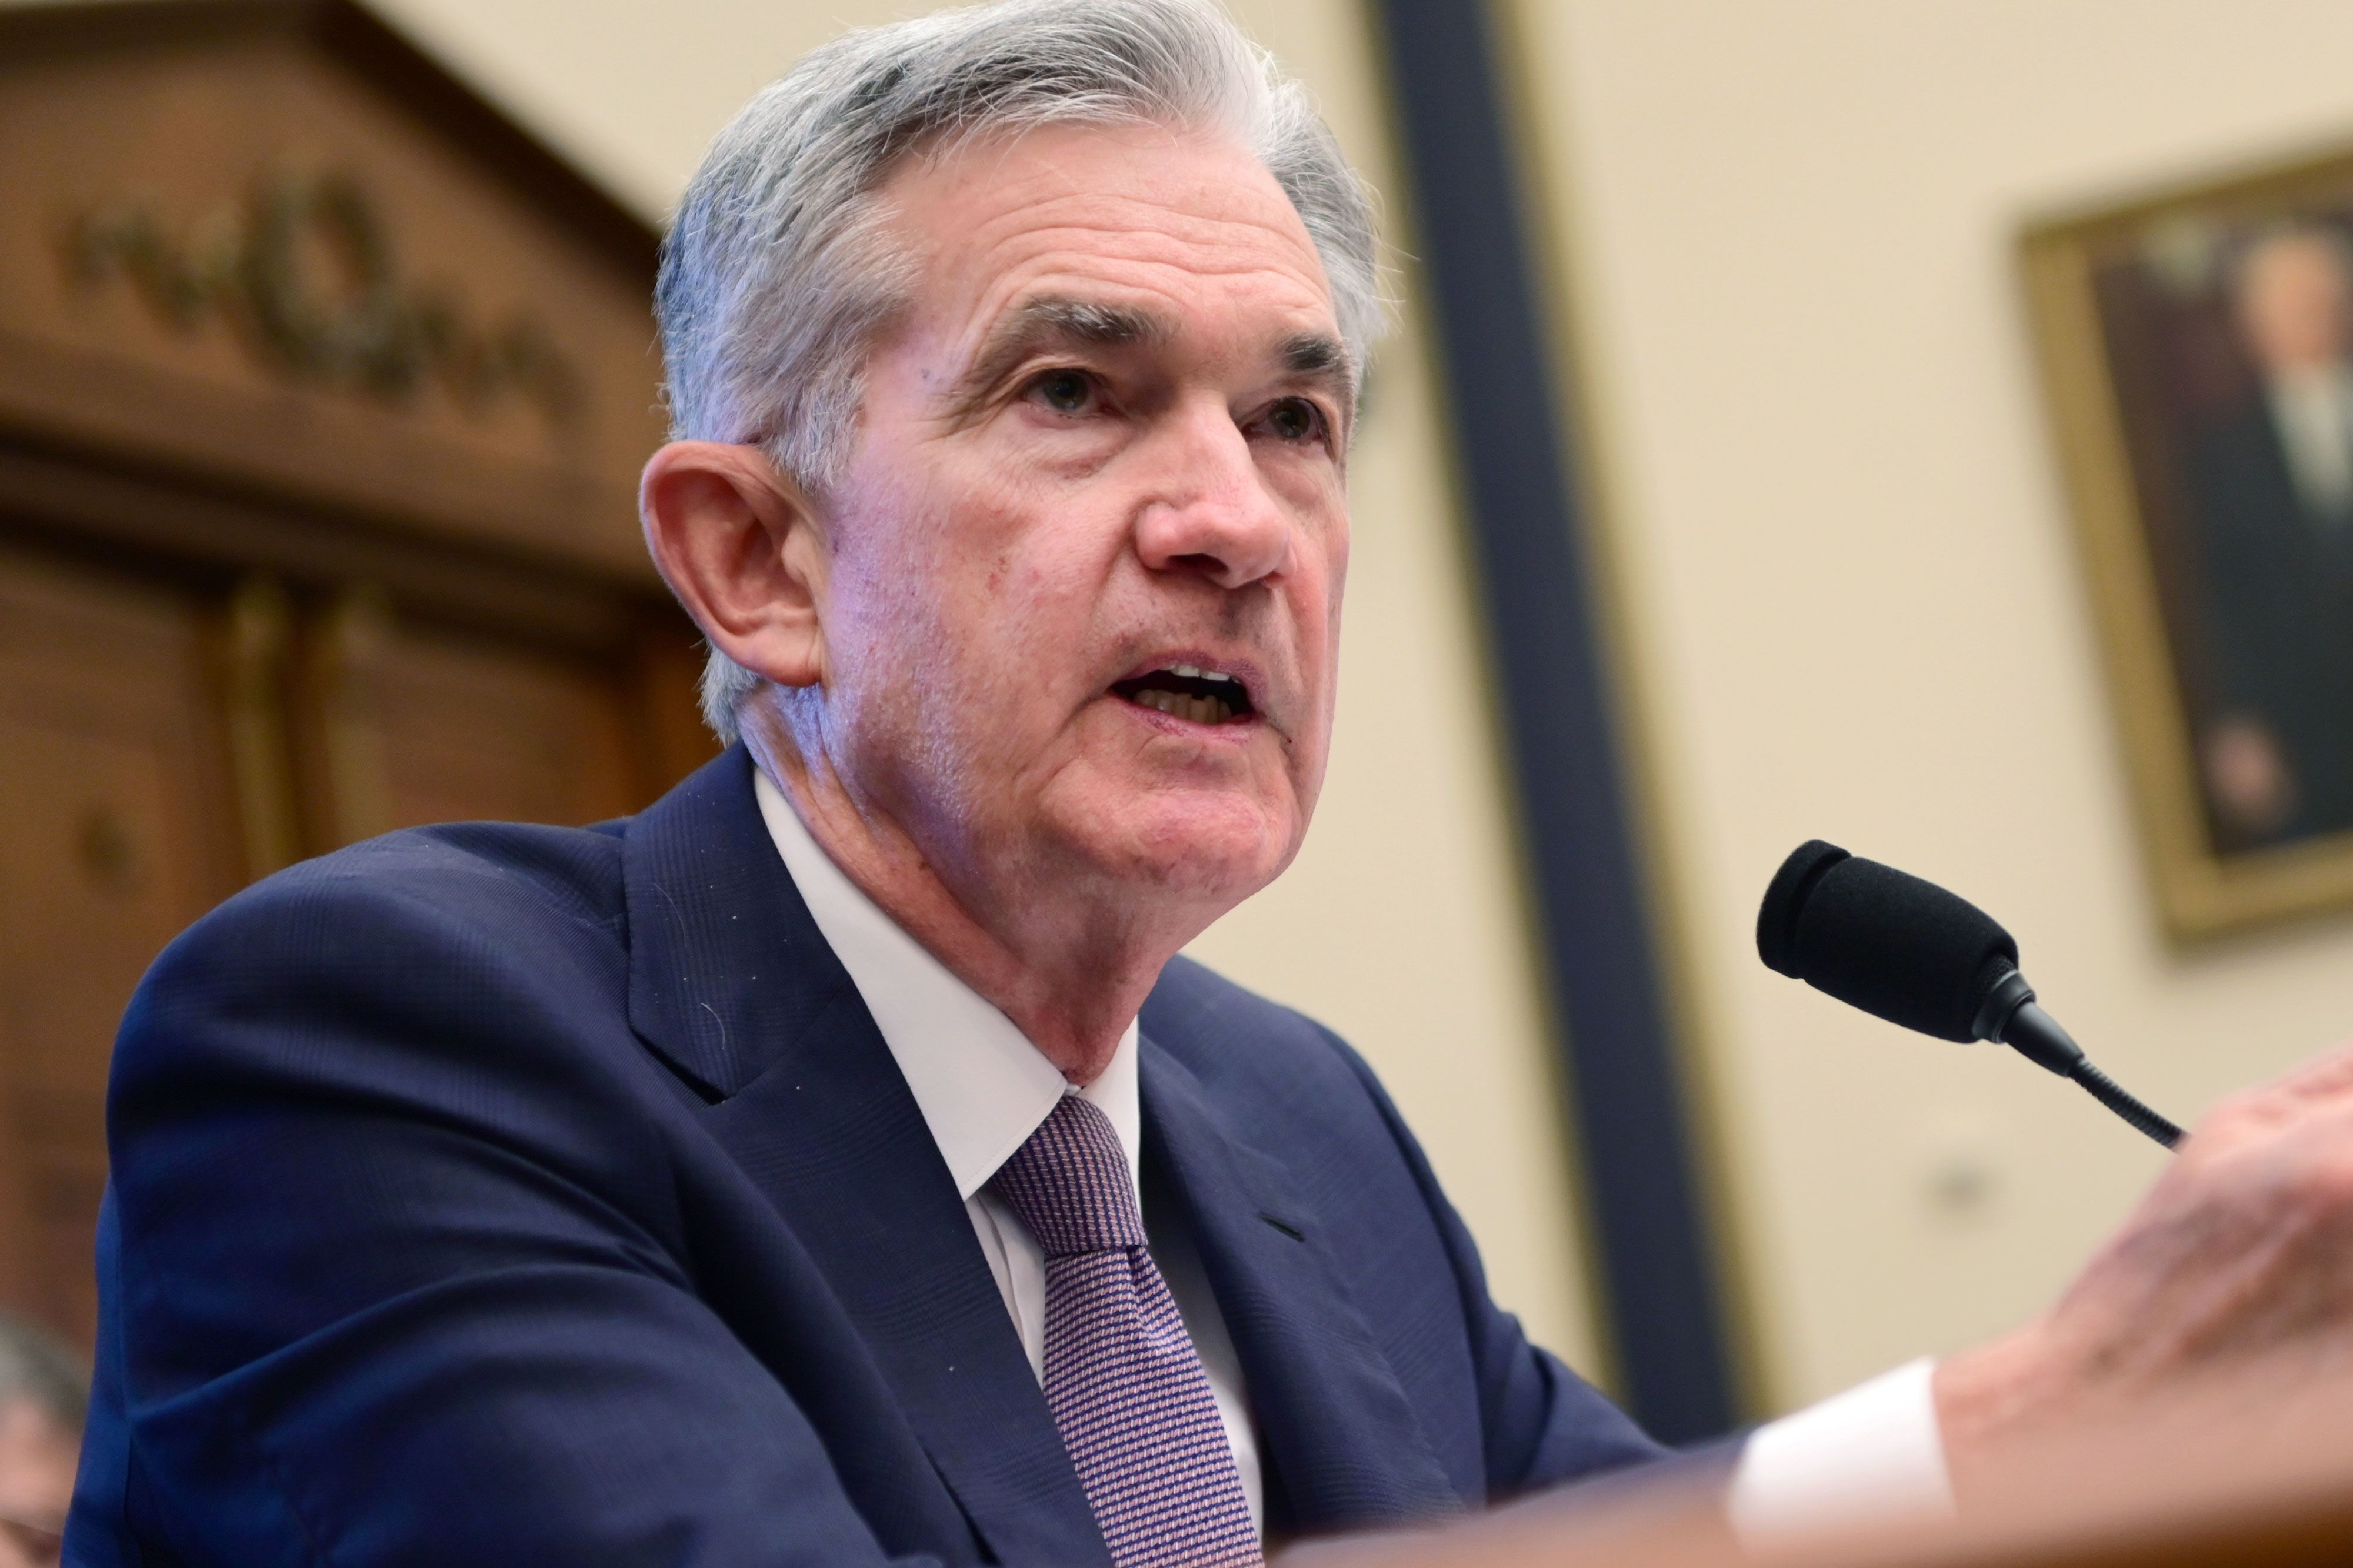 The Fed could be building a bubble if it cuts rates